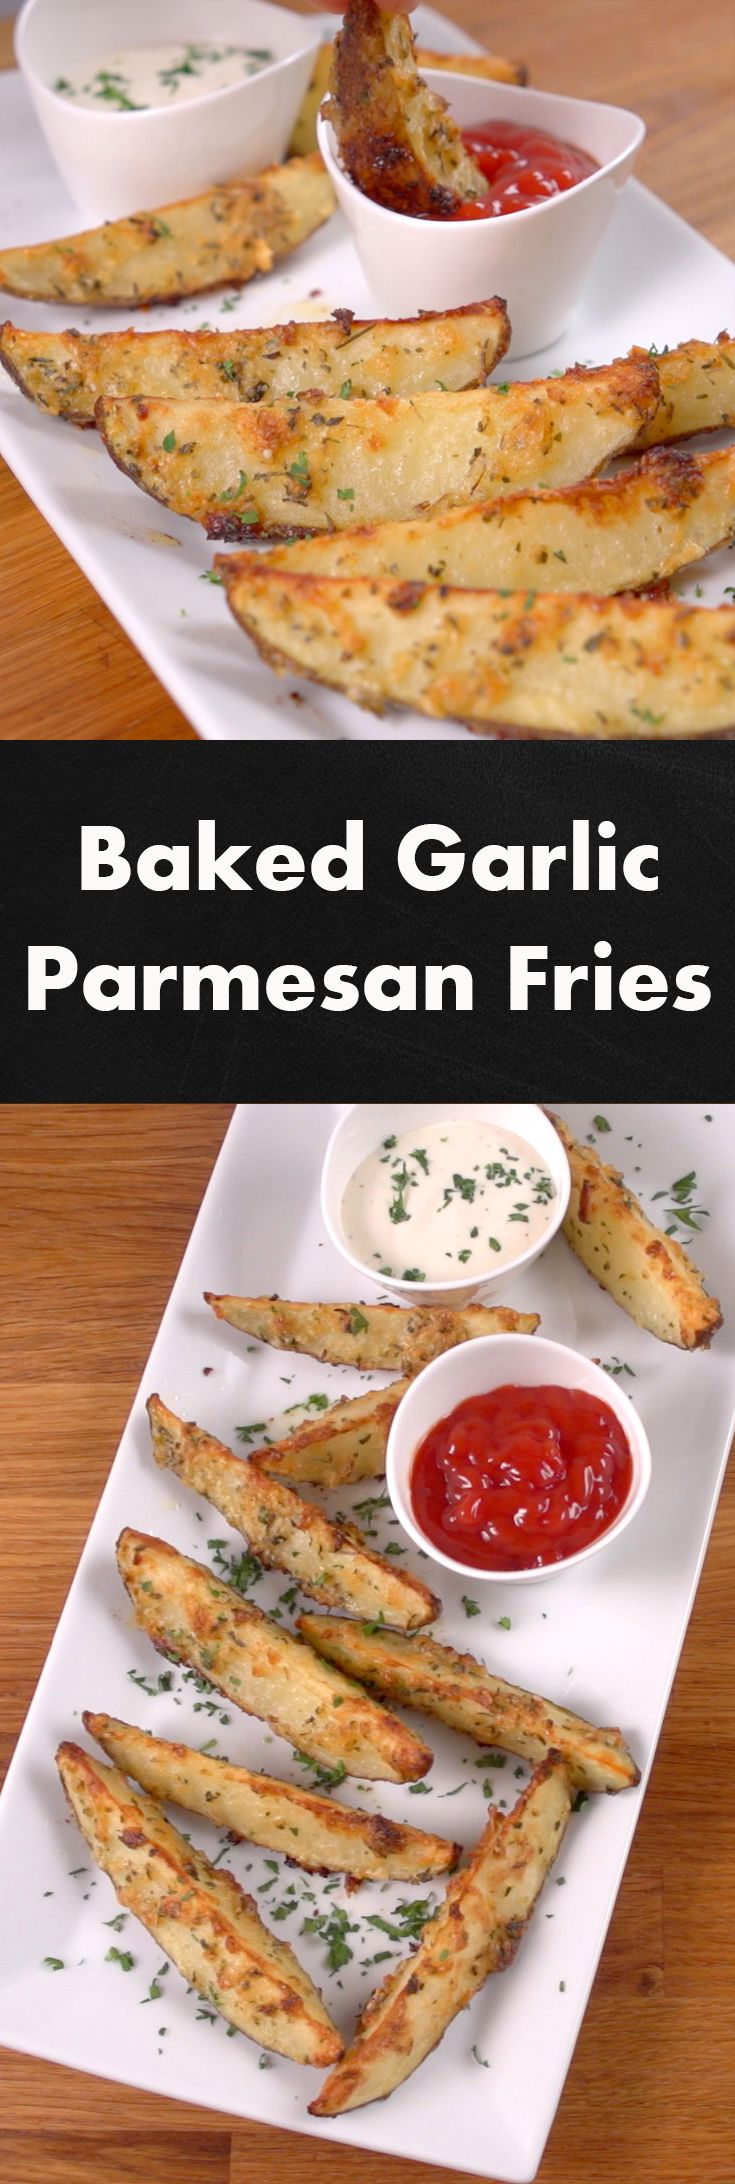 Baked Garlic Parmesan Fries | These fries are not only coated in a tantalizing mixture of seasoning and cheese, but they're baked, instead of deep-fried, for a slightly-healthier, crispy, golden taste. They couldn't be simpler to make or tastier;. Click for the video and recipe. #familydinner #healthycooking #sidedishes